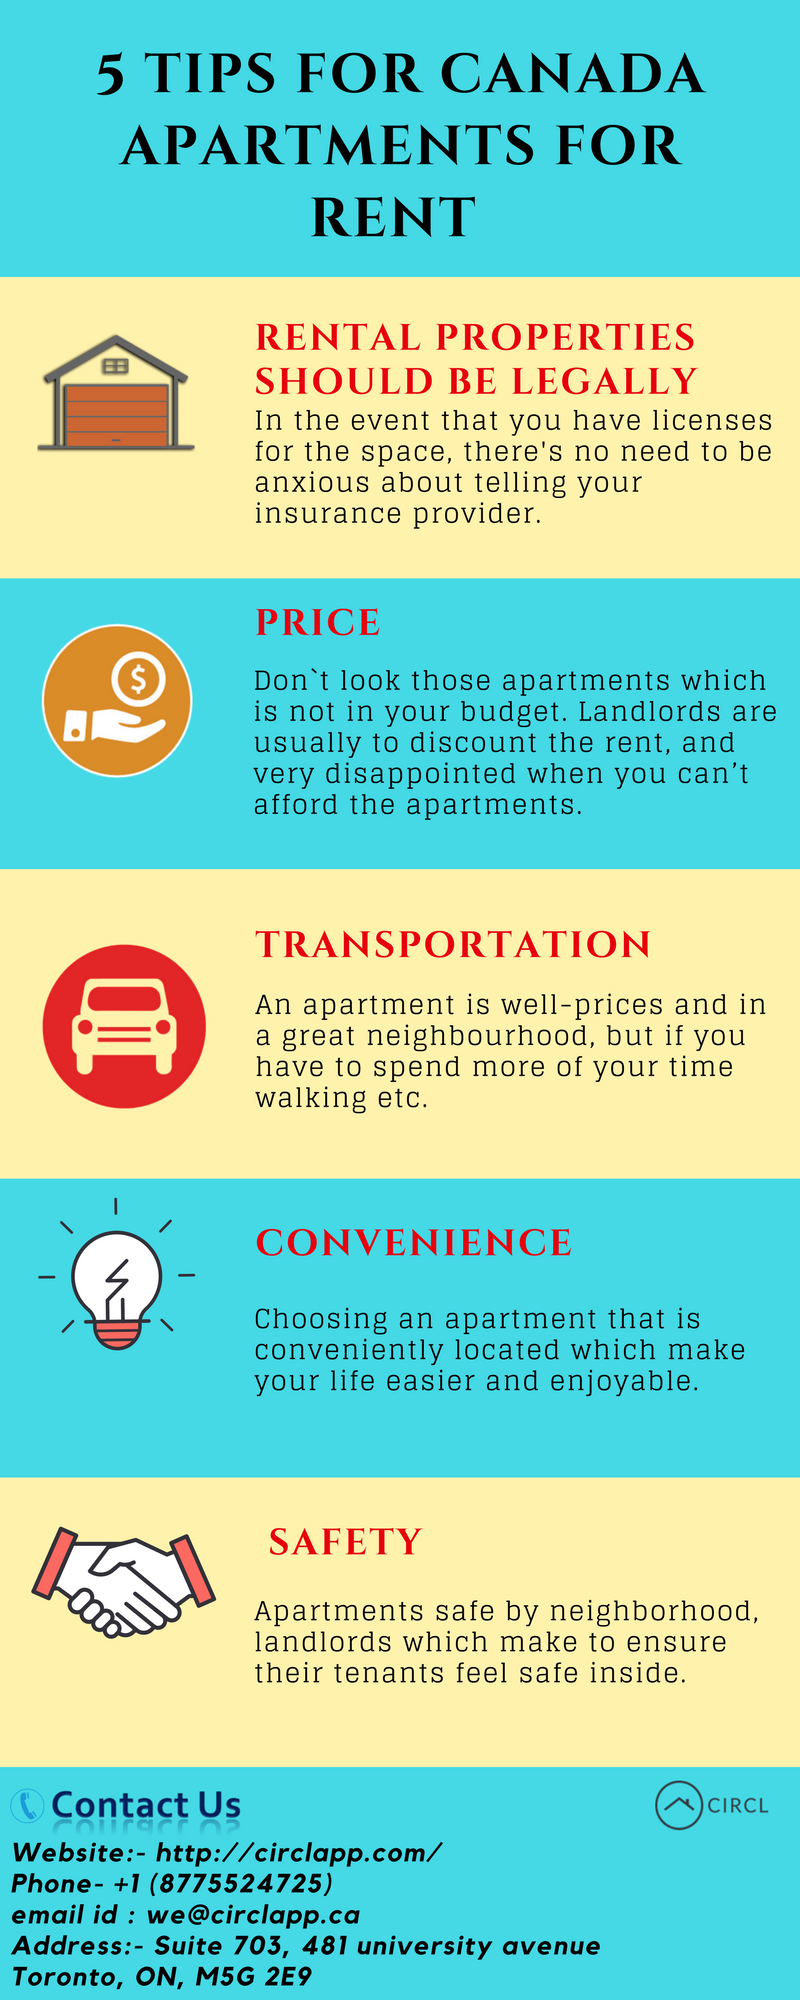 Find The Best Apartments And Condos To Rent On Circlapp. Find The Best  Value For